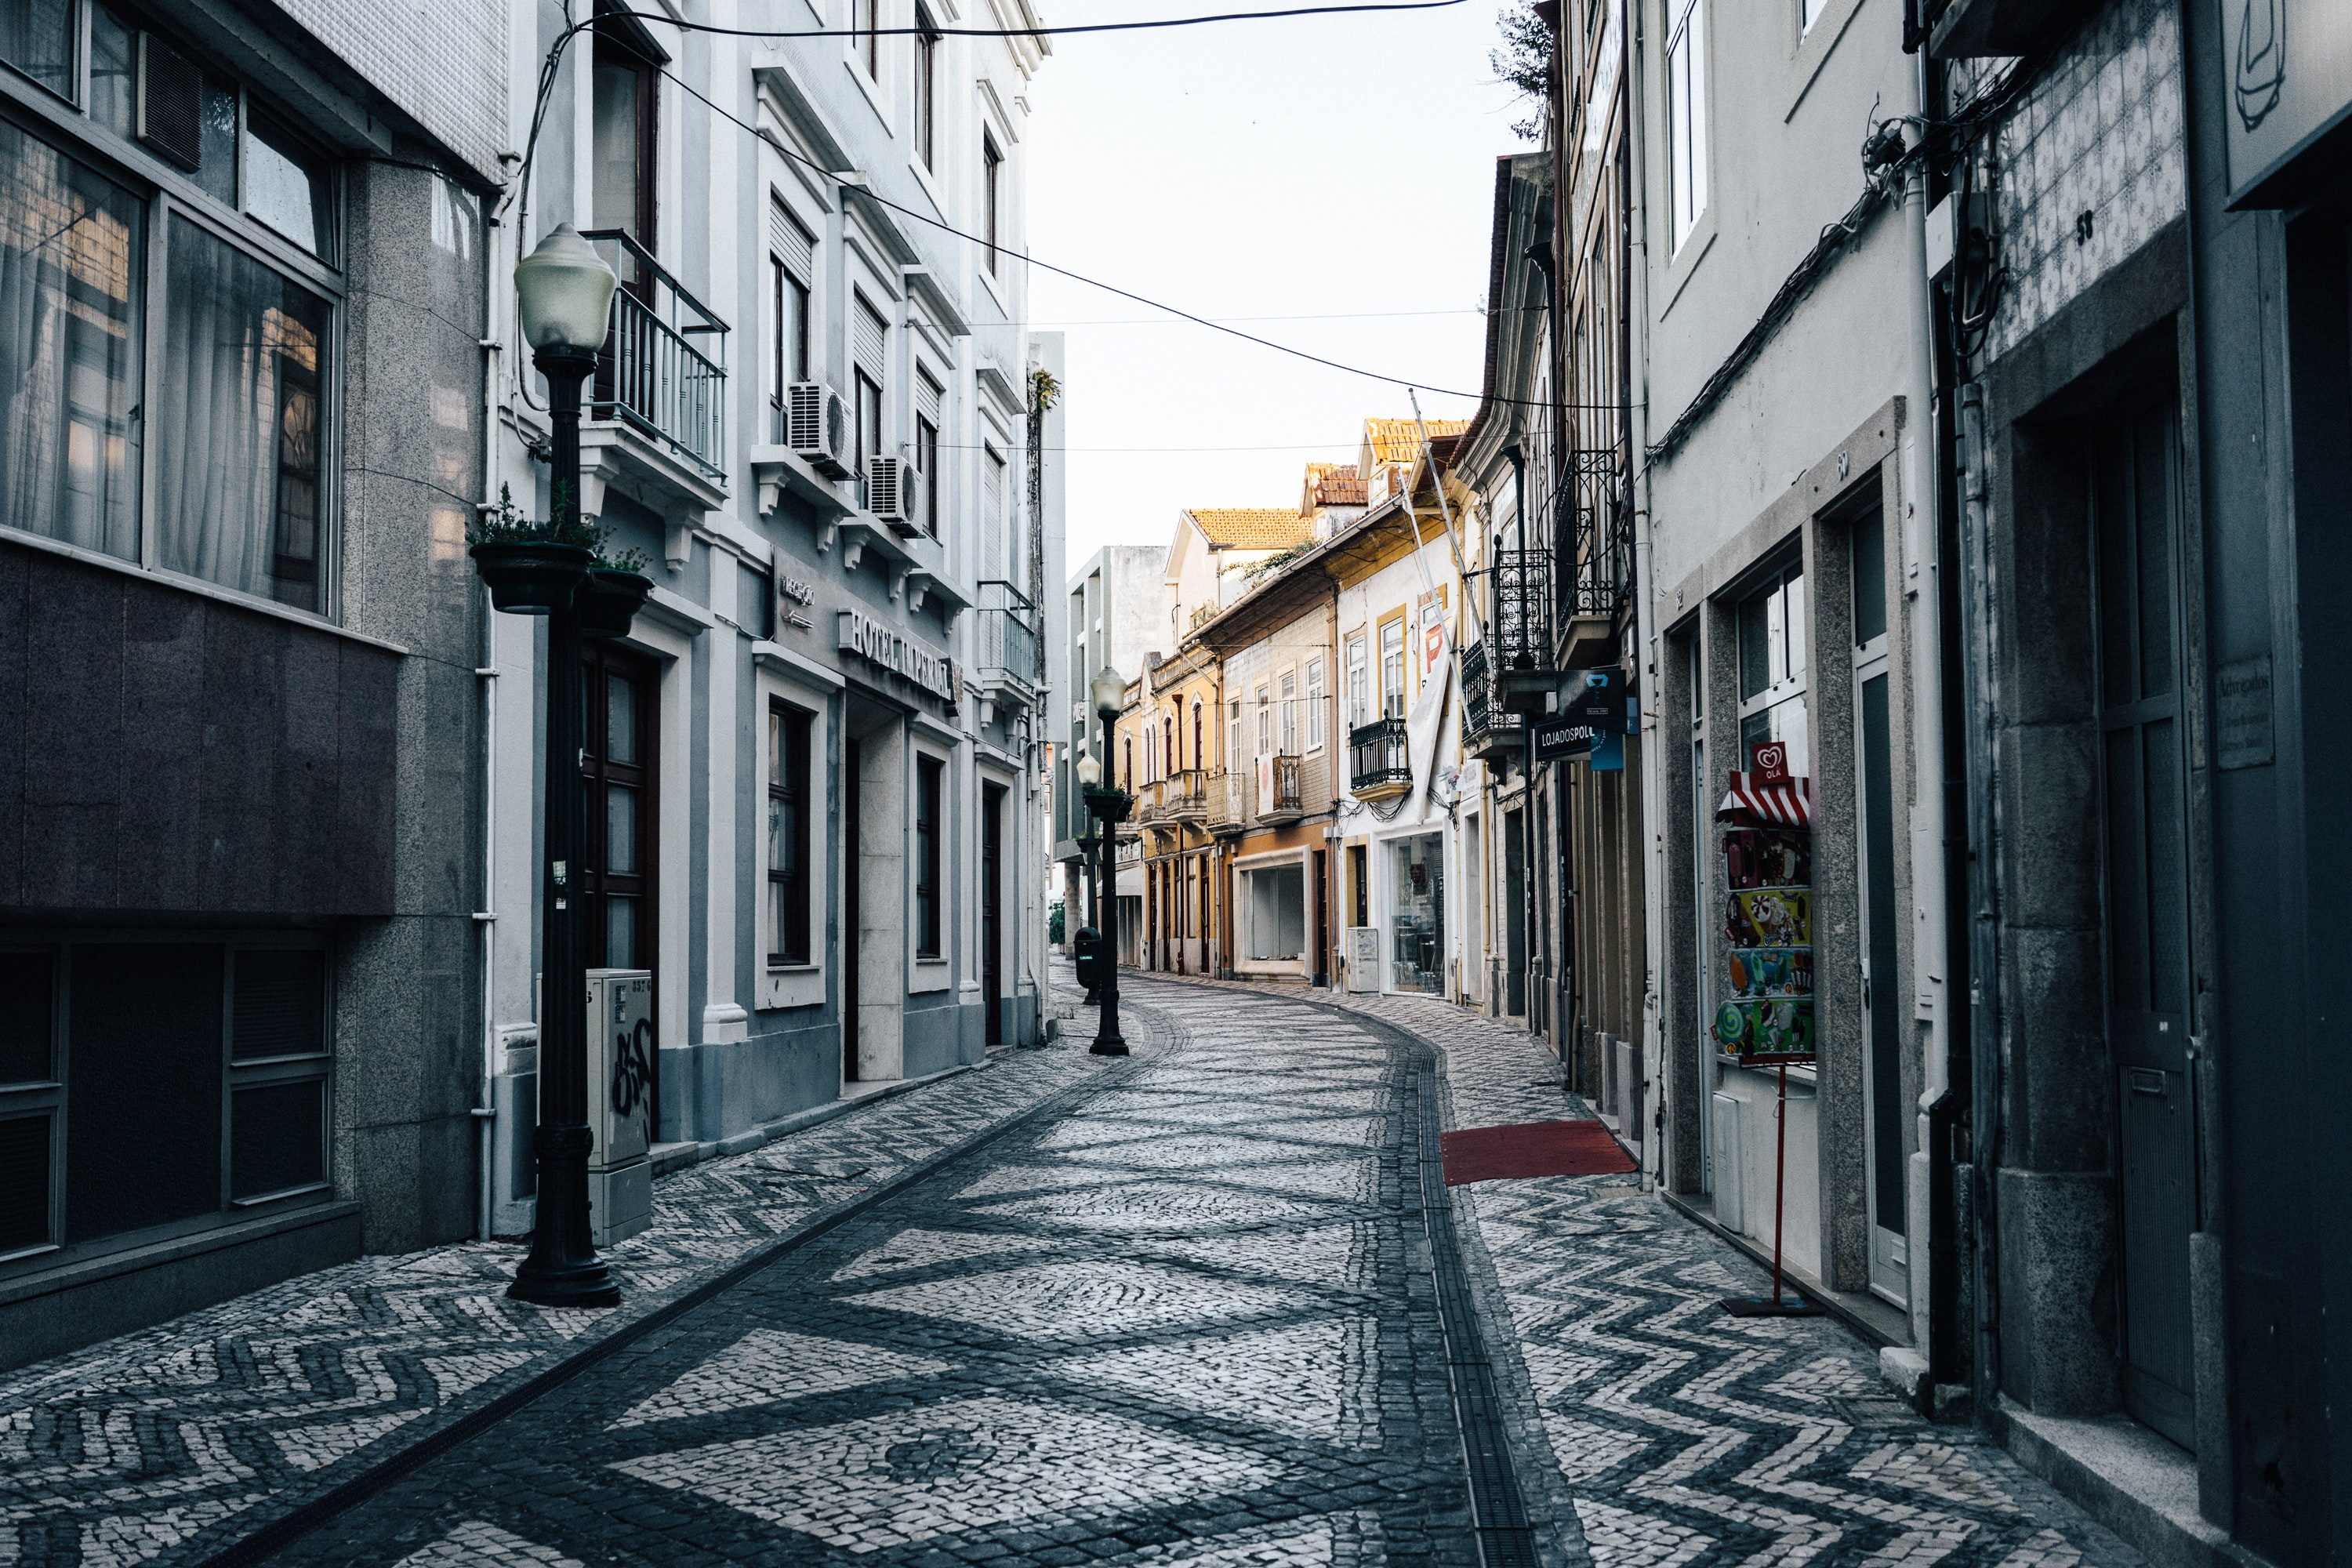 Cobblestone street and European architecture form a narrow path